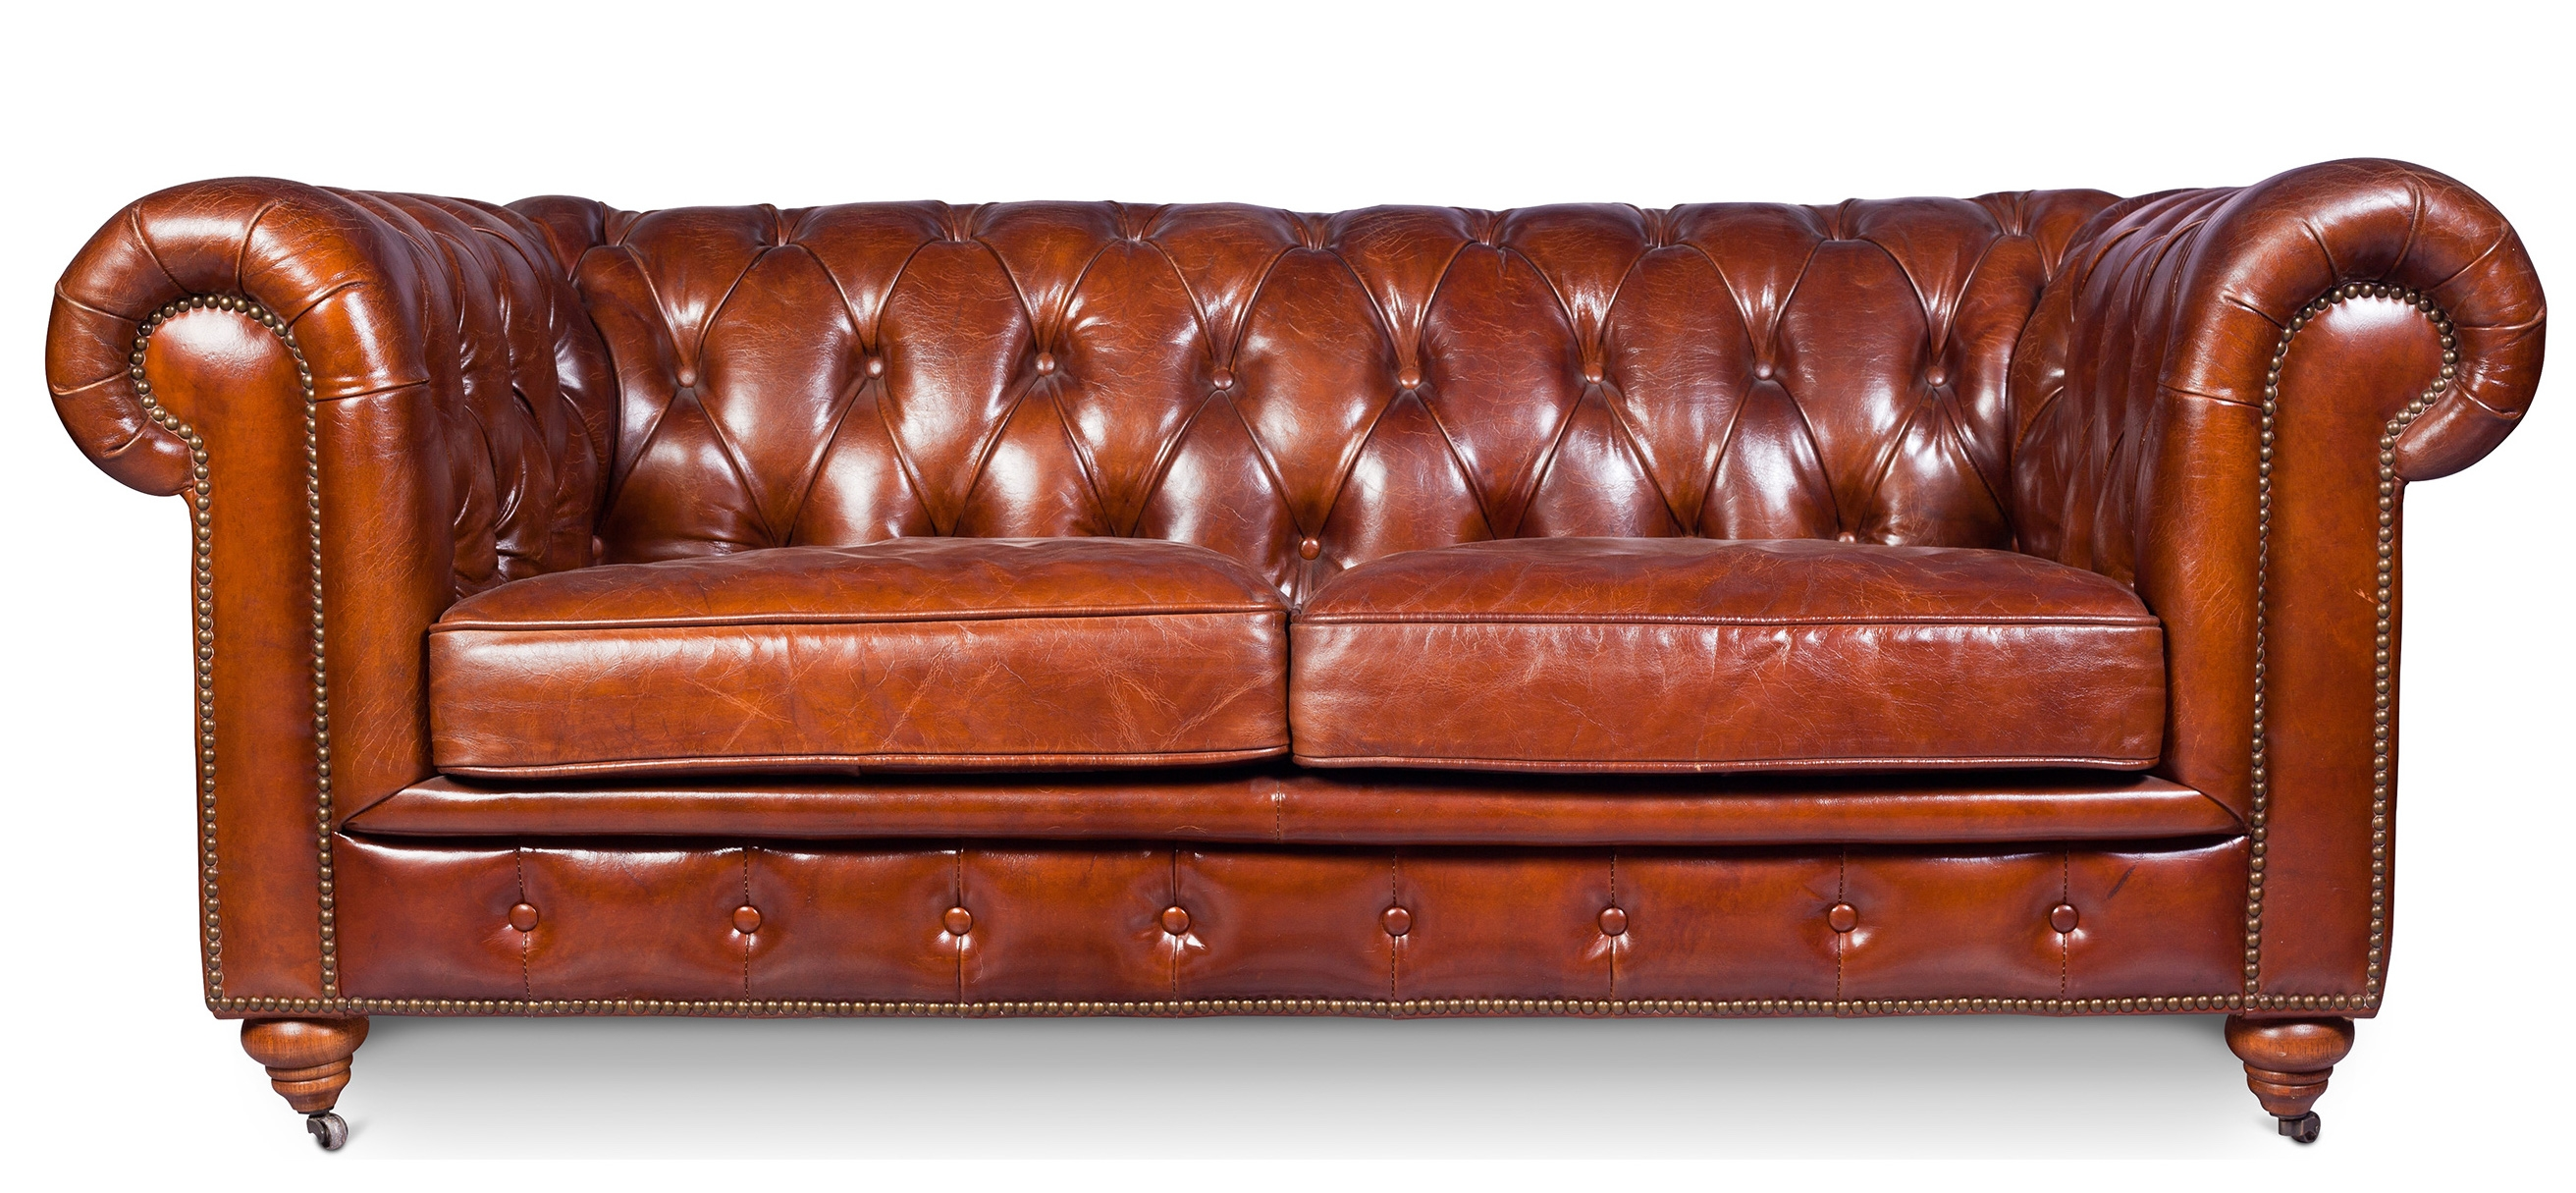 canap 3 places cuir brun vintage chesterfield. Black Bedroom Furniture Sets. Home Design Ideas